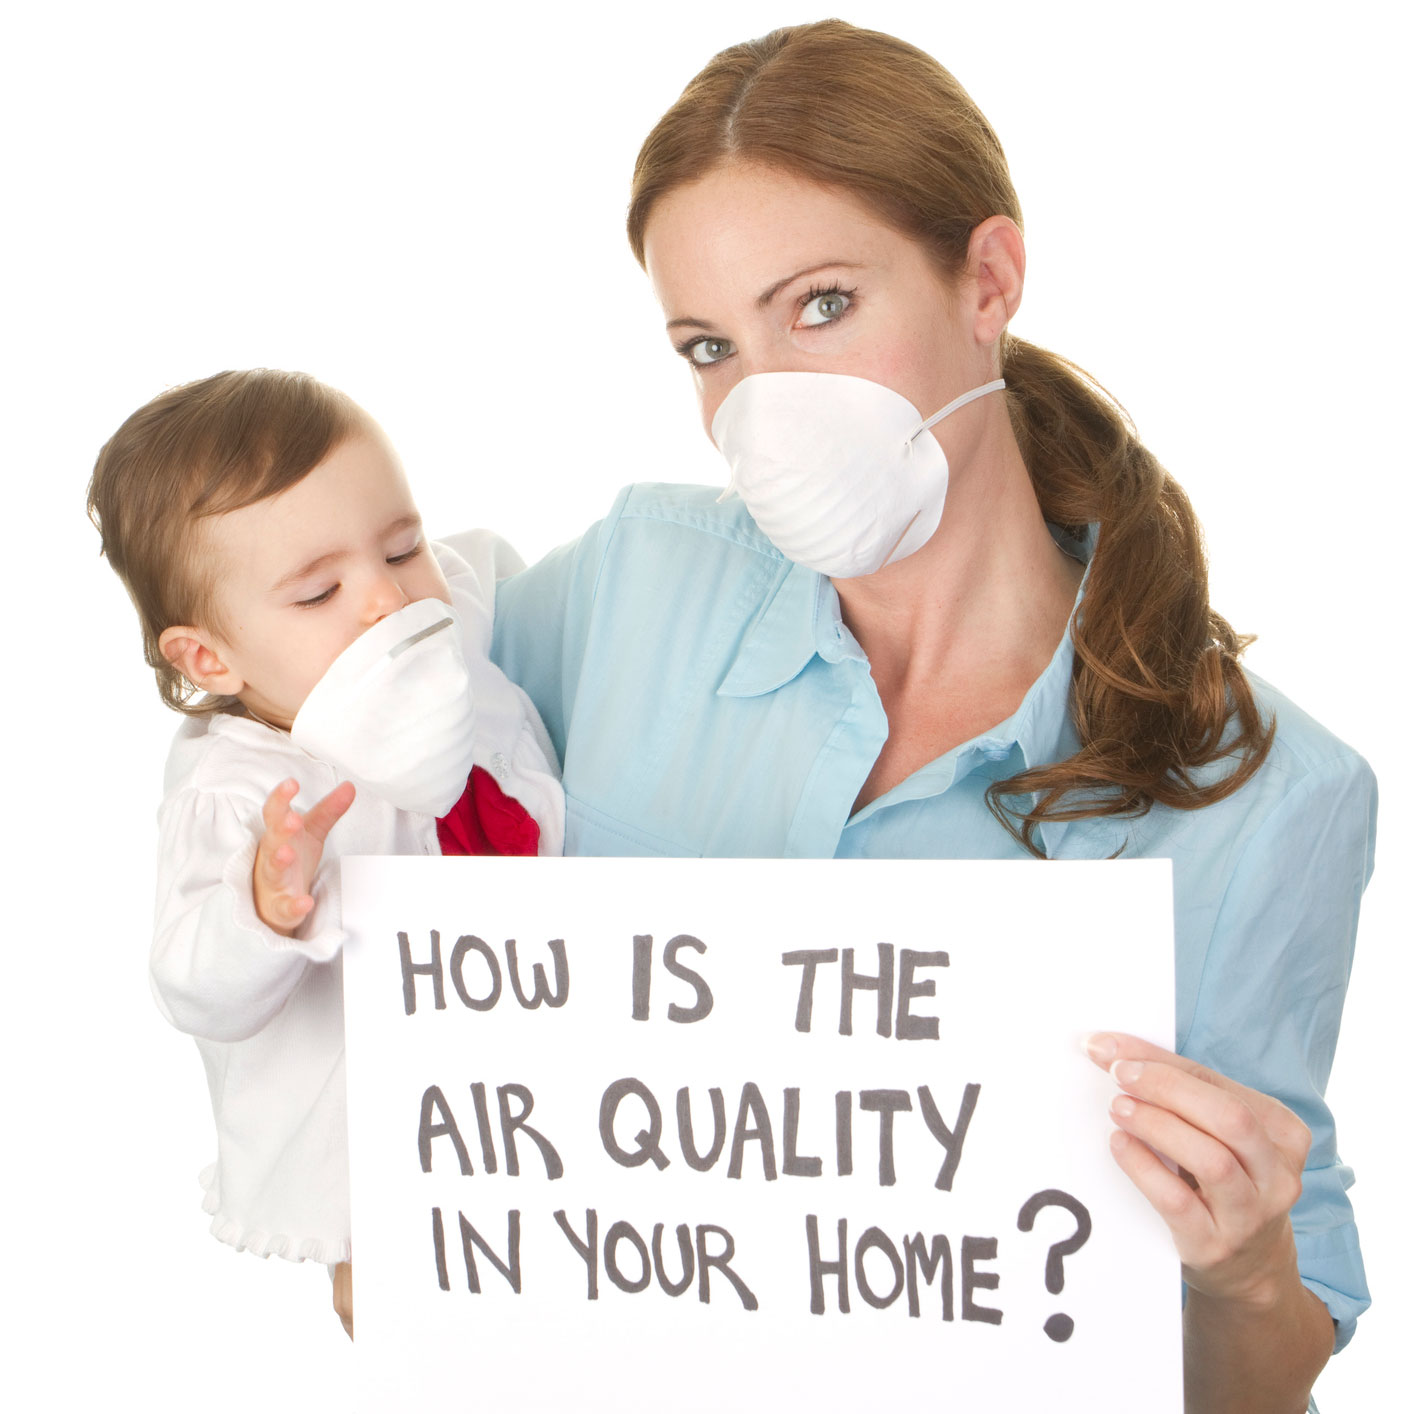 A brief history of Indoor Air Quality by Dr Anna O'Donovan, Allergy Standards